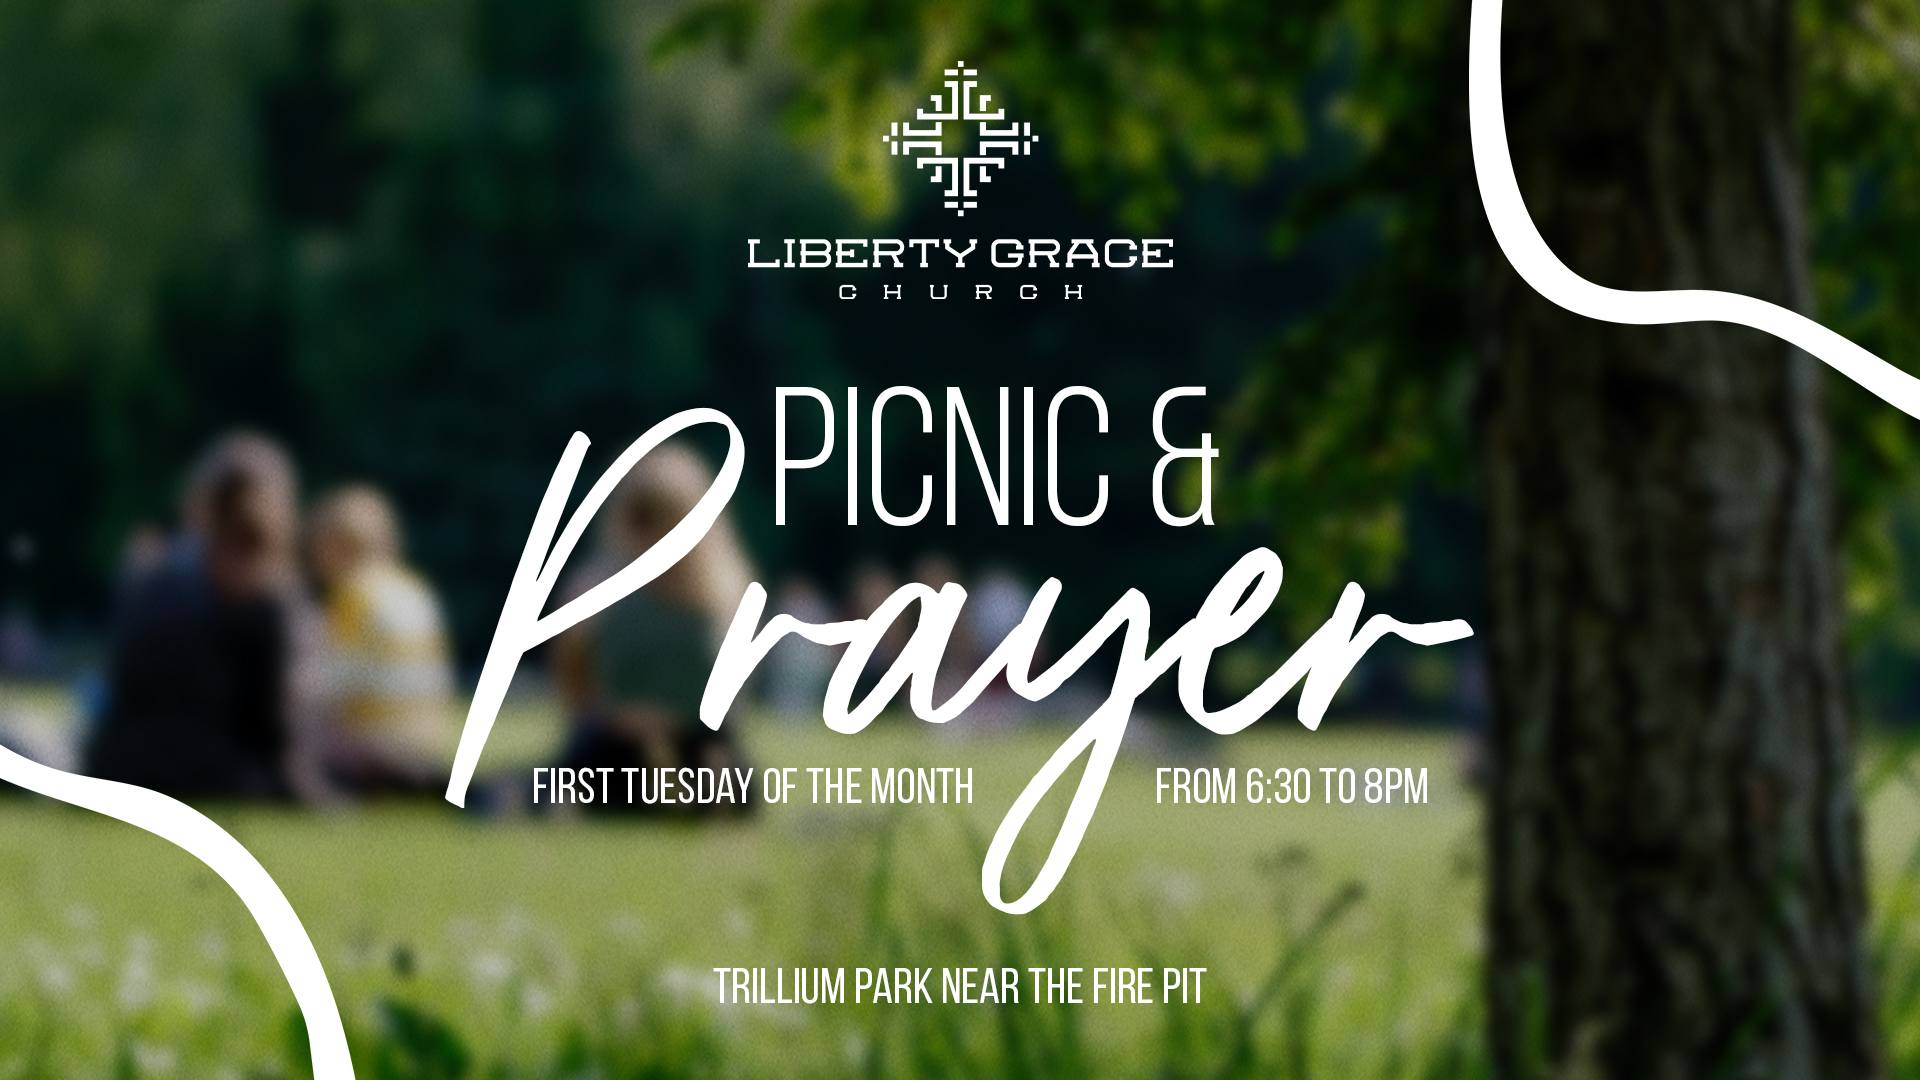 Picnic and Prayer